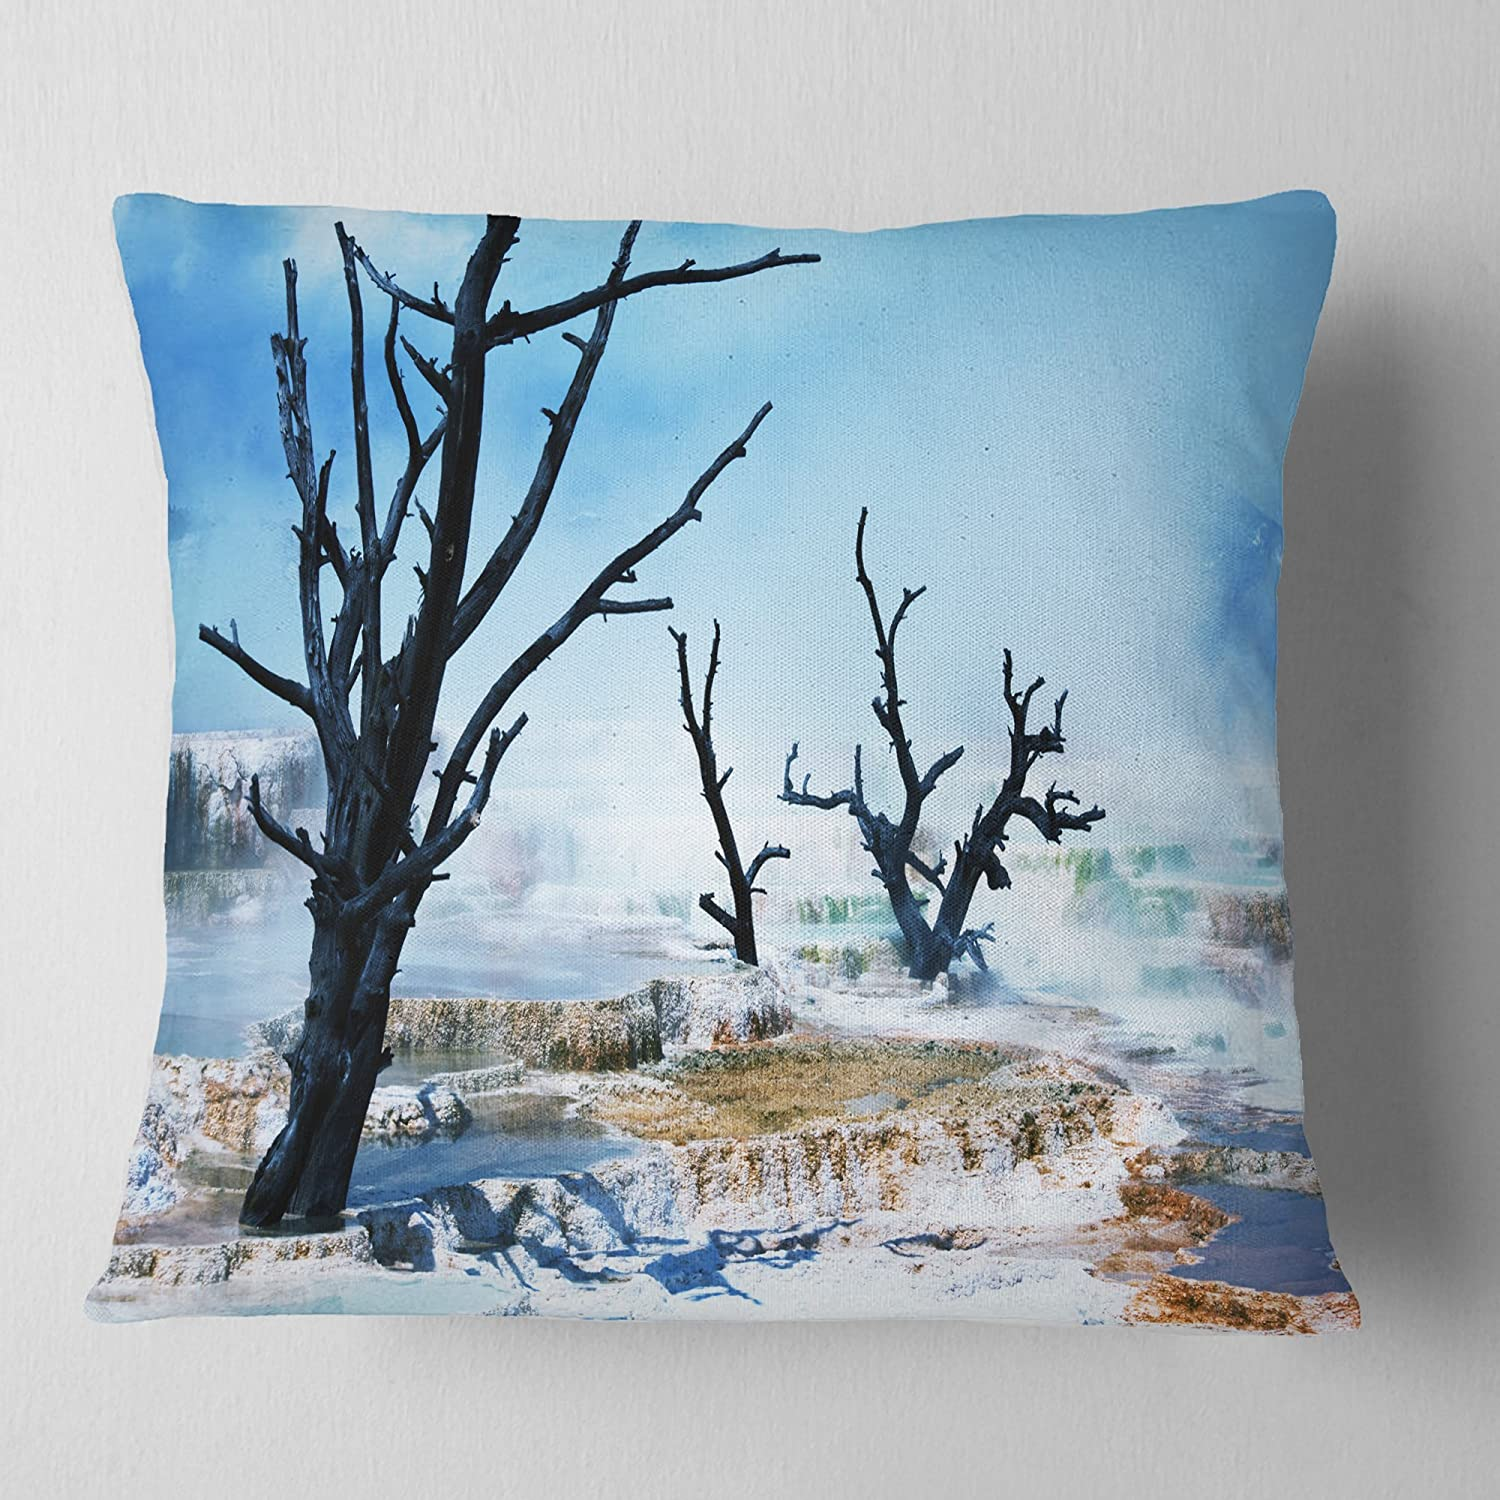 Designart CU12443-18-18 Beautiful Land with Large Dry Trees' Landscape Printed Cushion Cover for Living Room, Sofa Throw Pillow 18 in. x 18 in. in